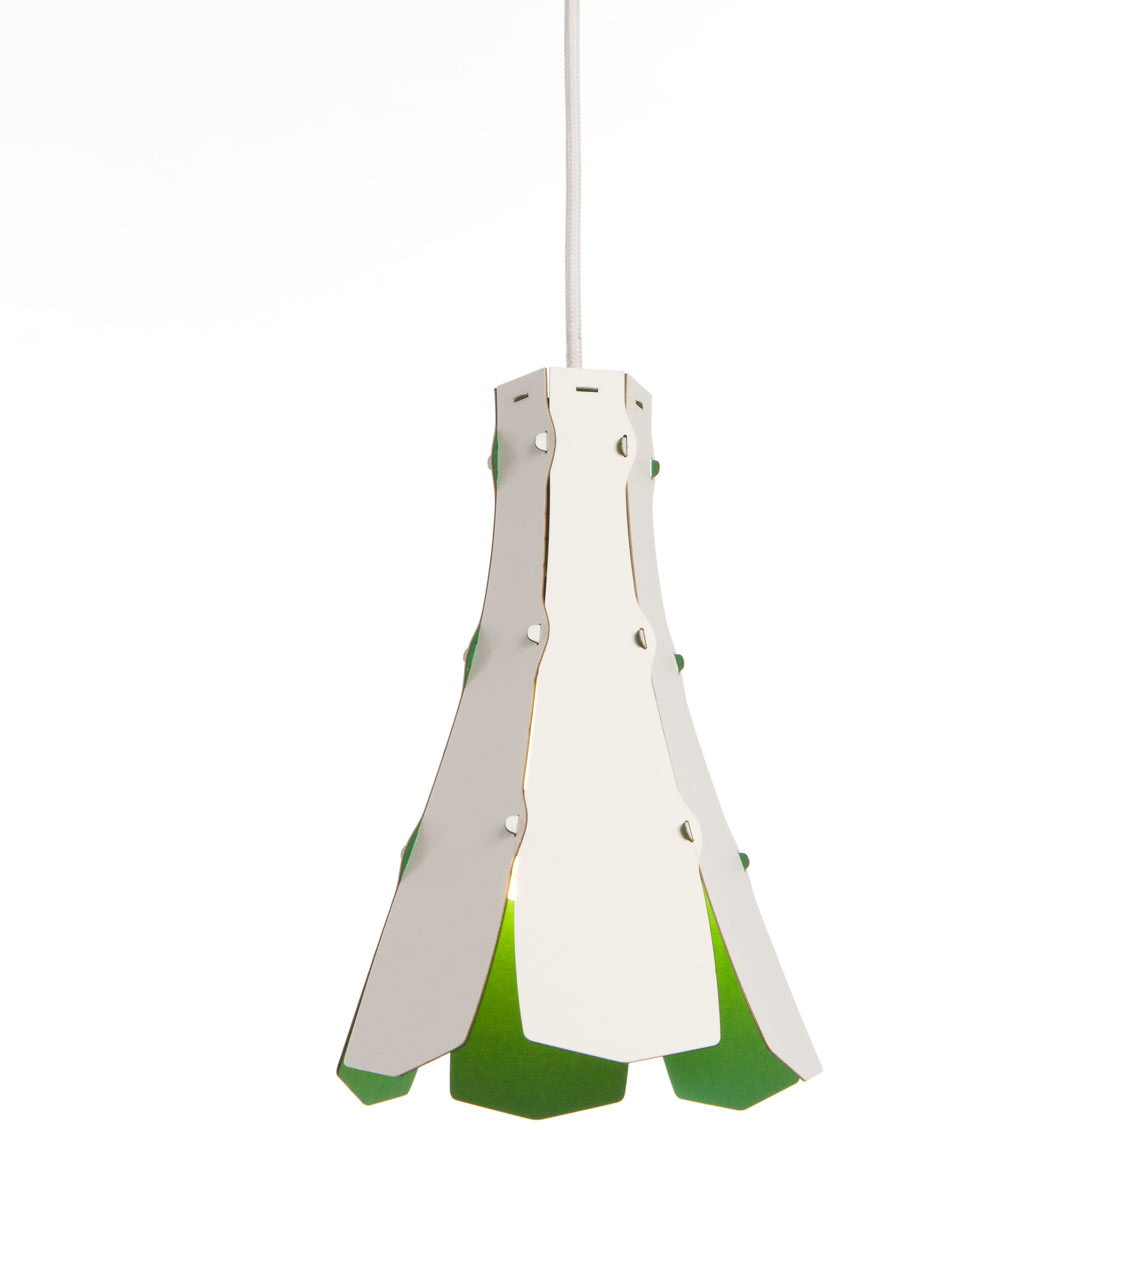 Desinature-Lily-Light-9-green-rev